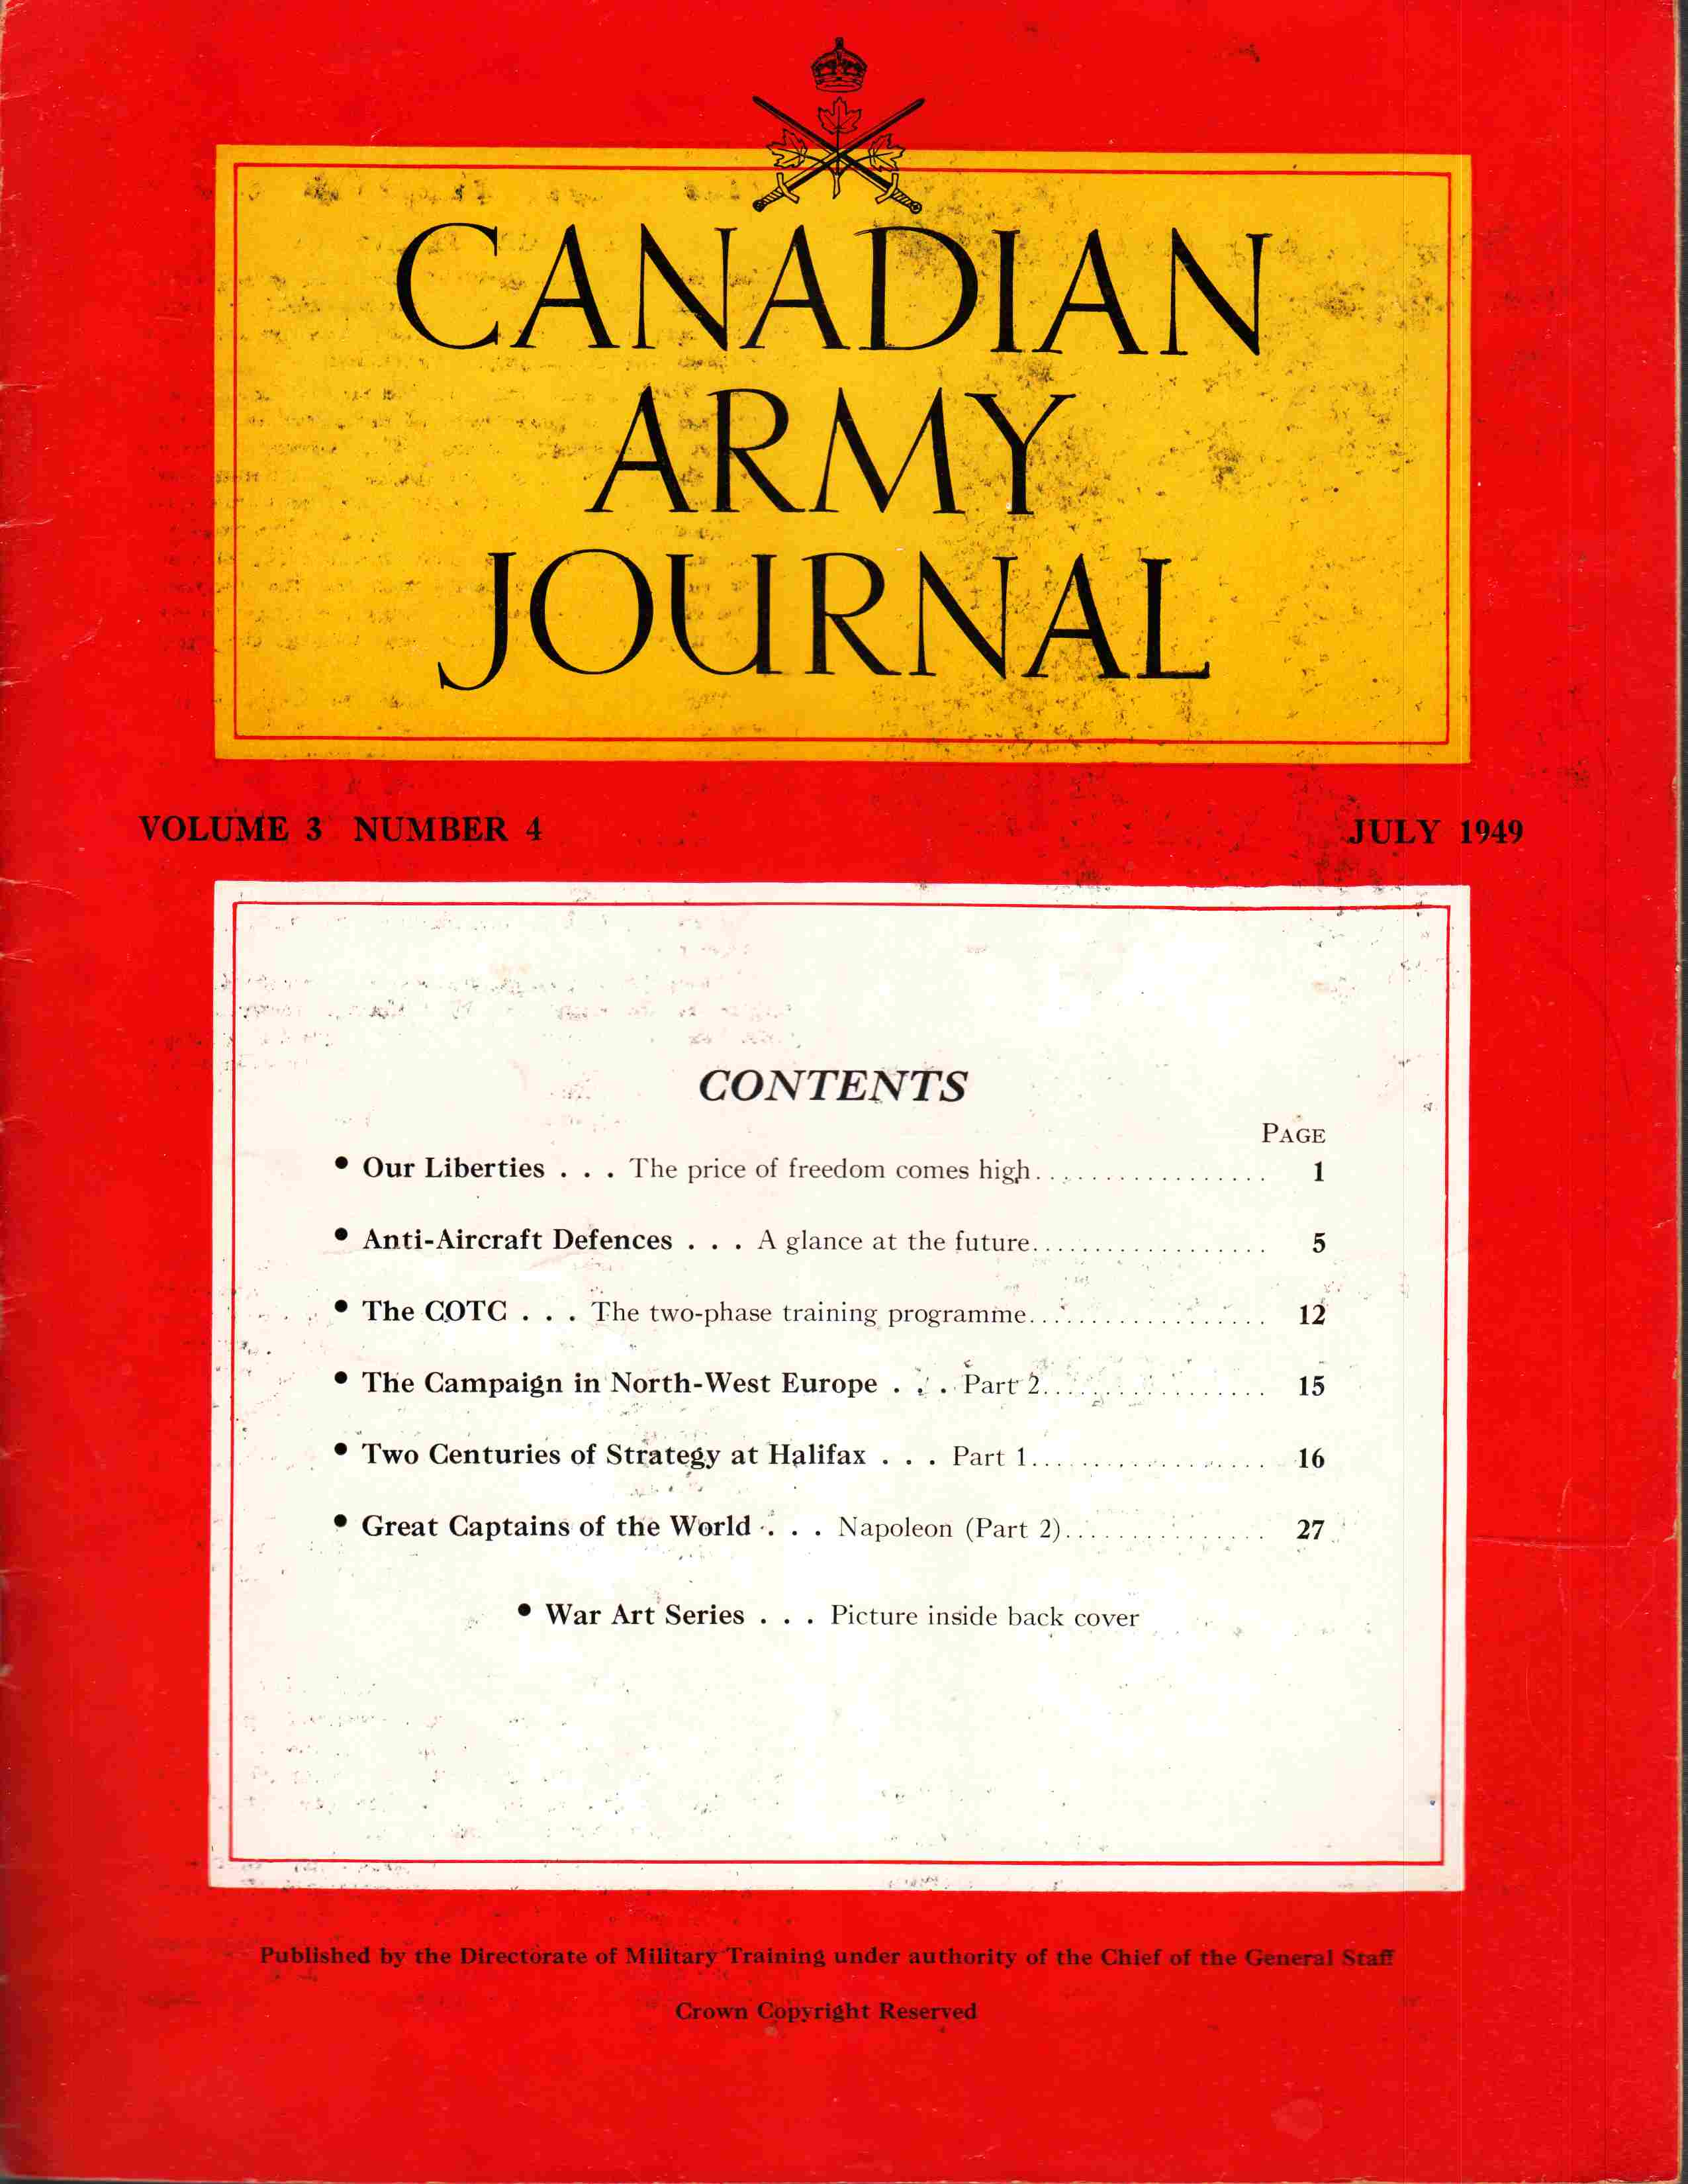 Image for Canadian Army Journal Volume 3 Number 4 July 1949